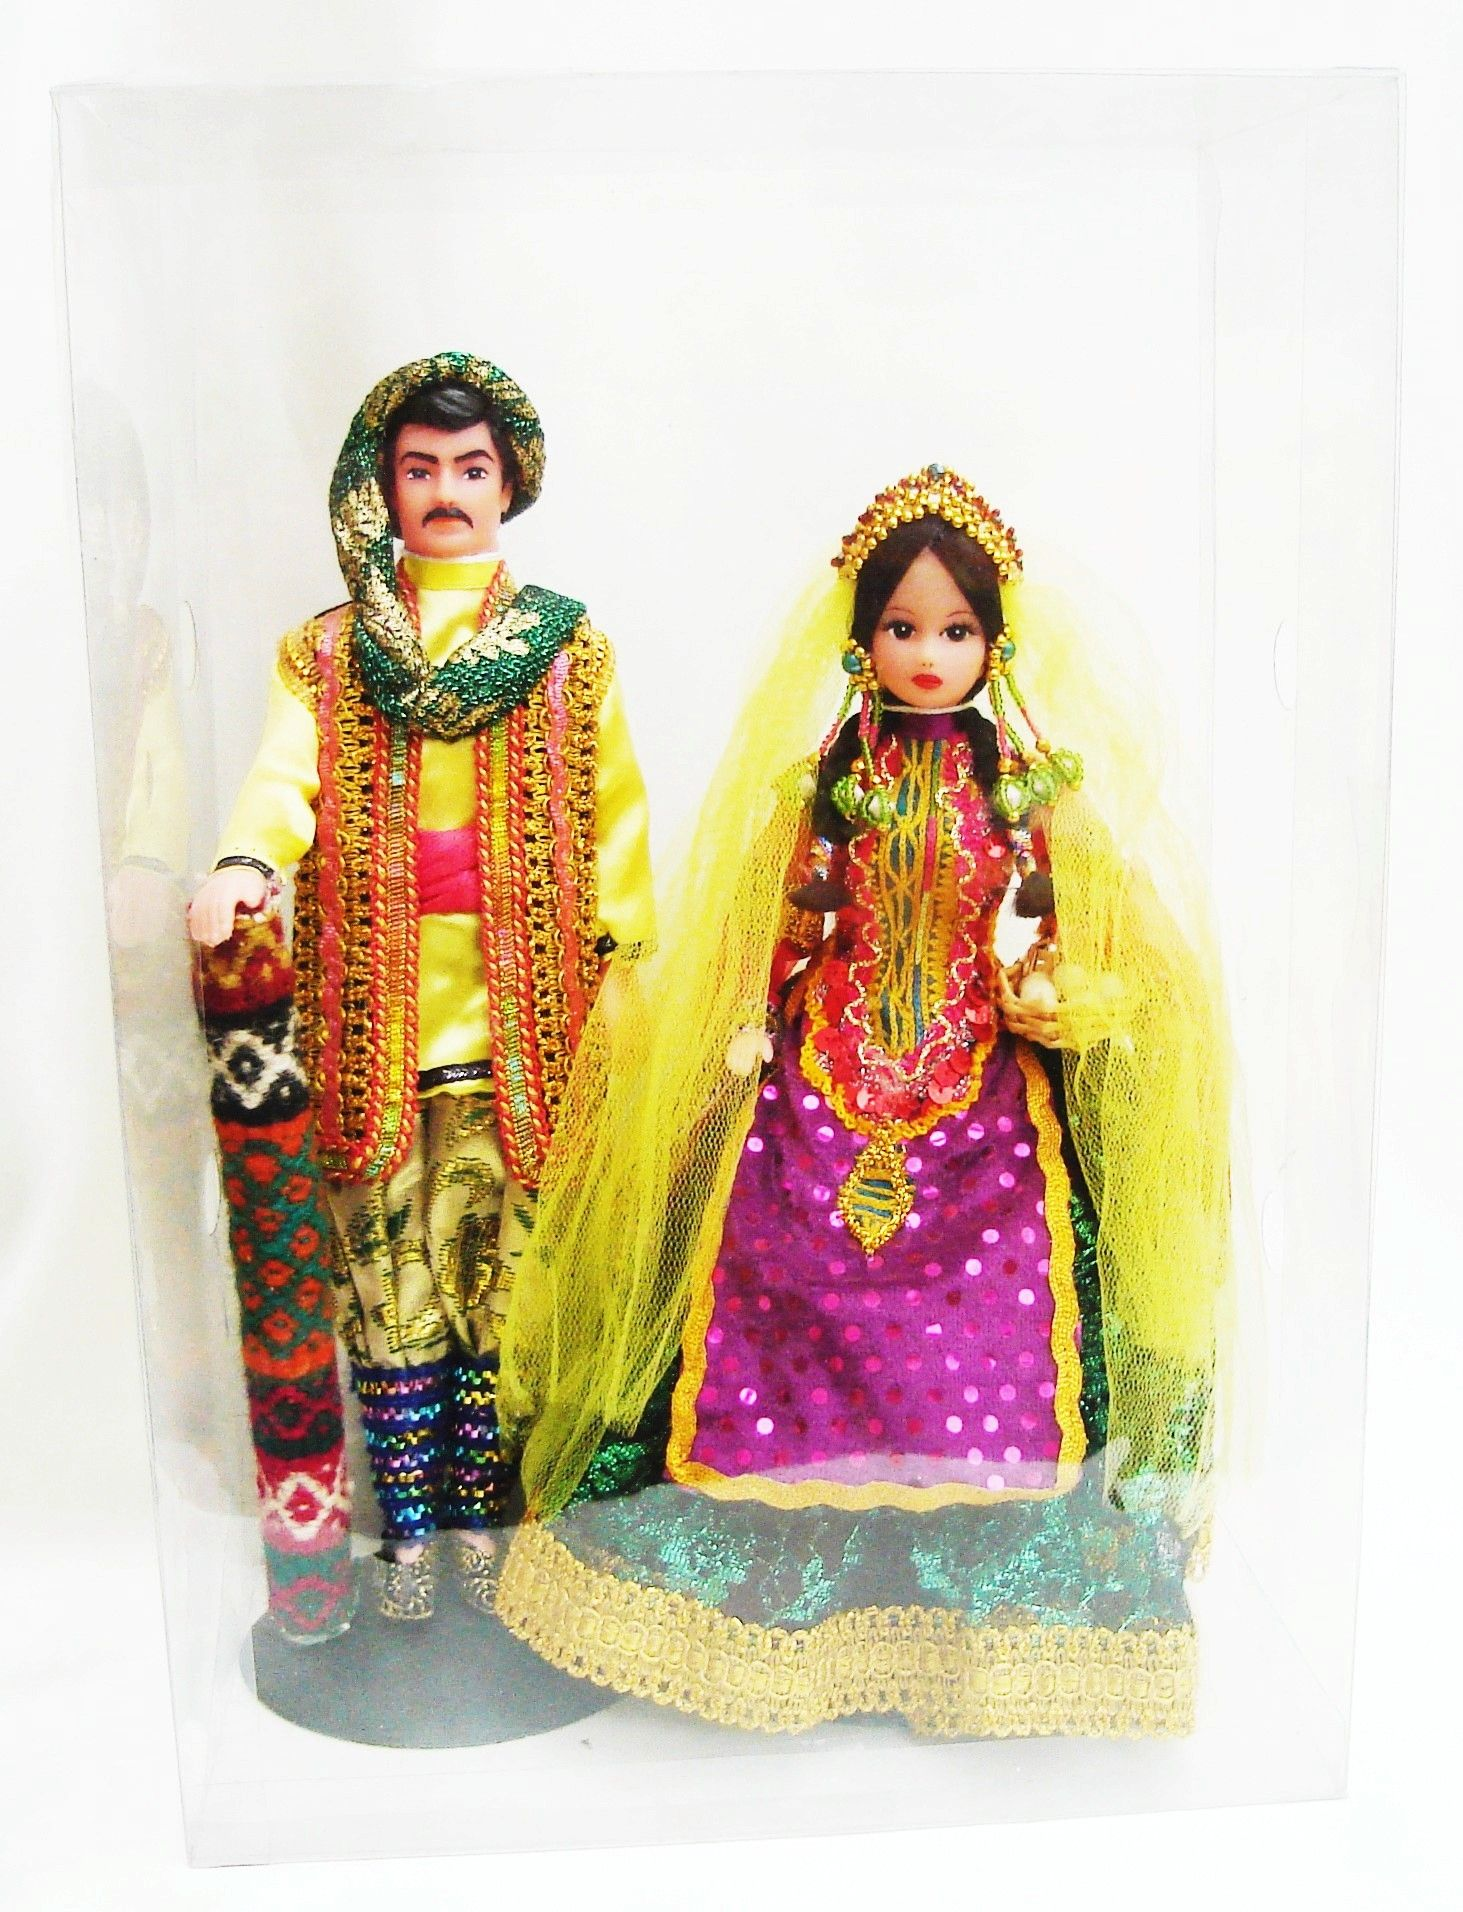 Iran pair of colourful dolls worldcostumedolls my pair of colourful dolls worldcostumedolls persian cultureiranmiddle eastethnic dressoutfits publicscrutiny Image collections